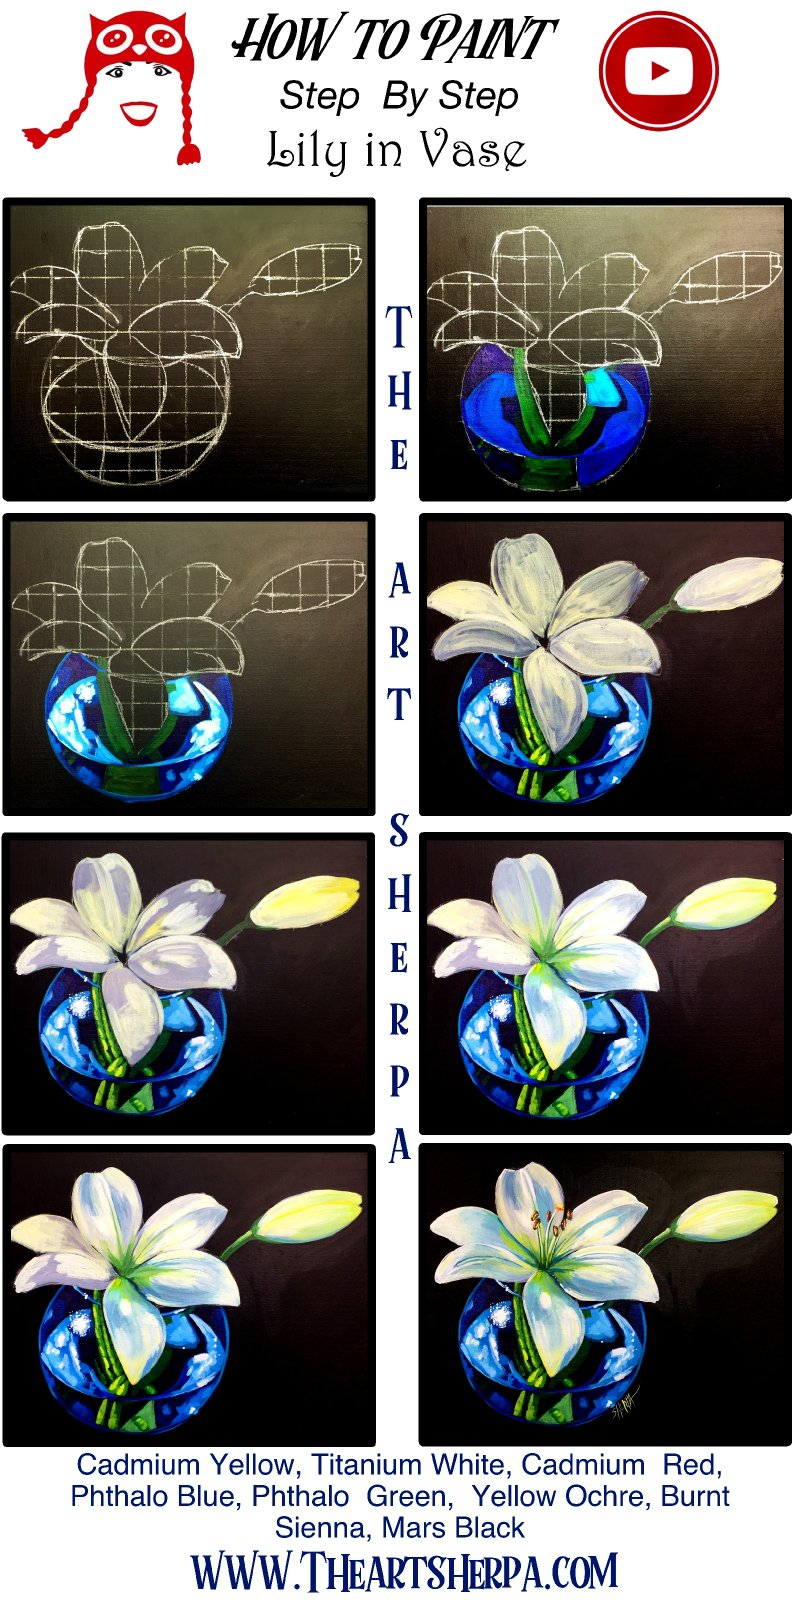 Lily and Vase  Step by Step 2020 .jpg